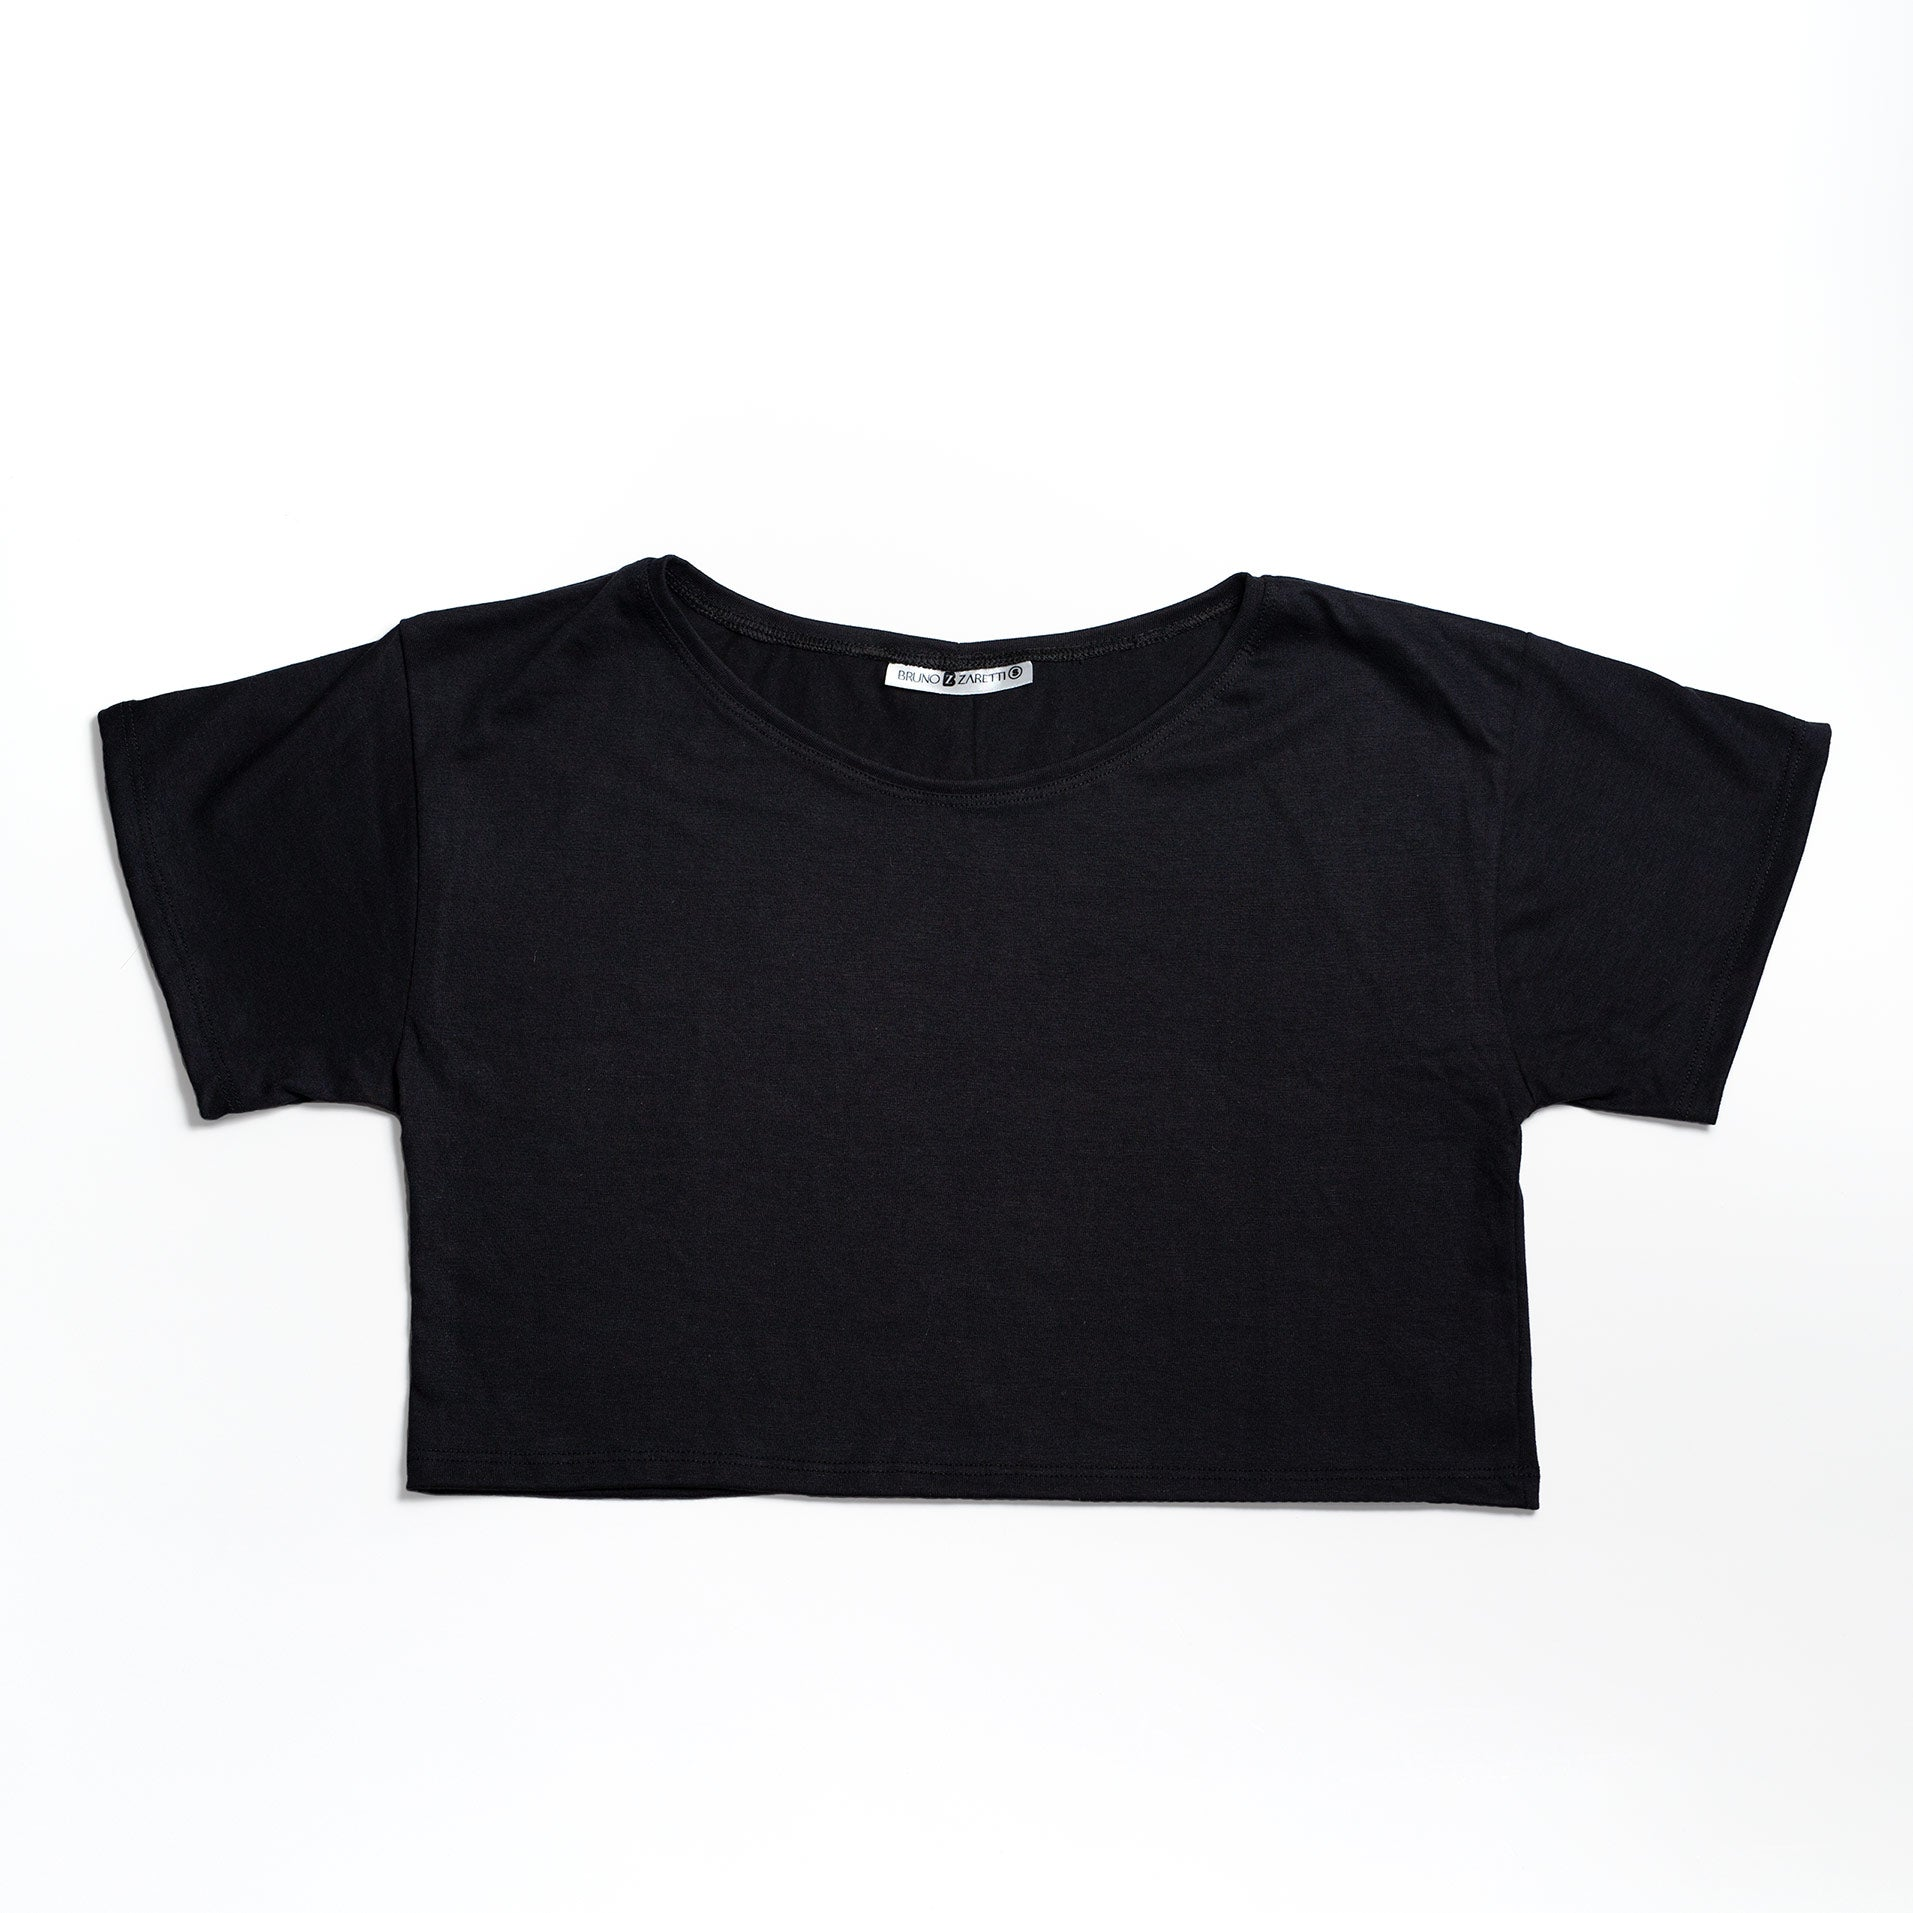 Polera Crop Top Oversized